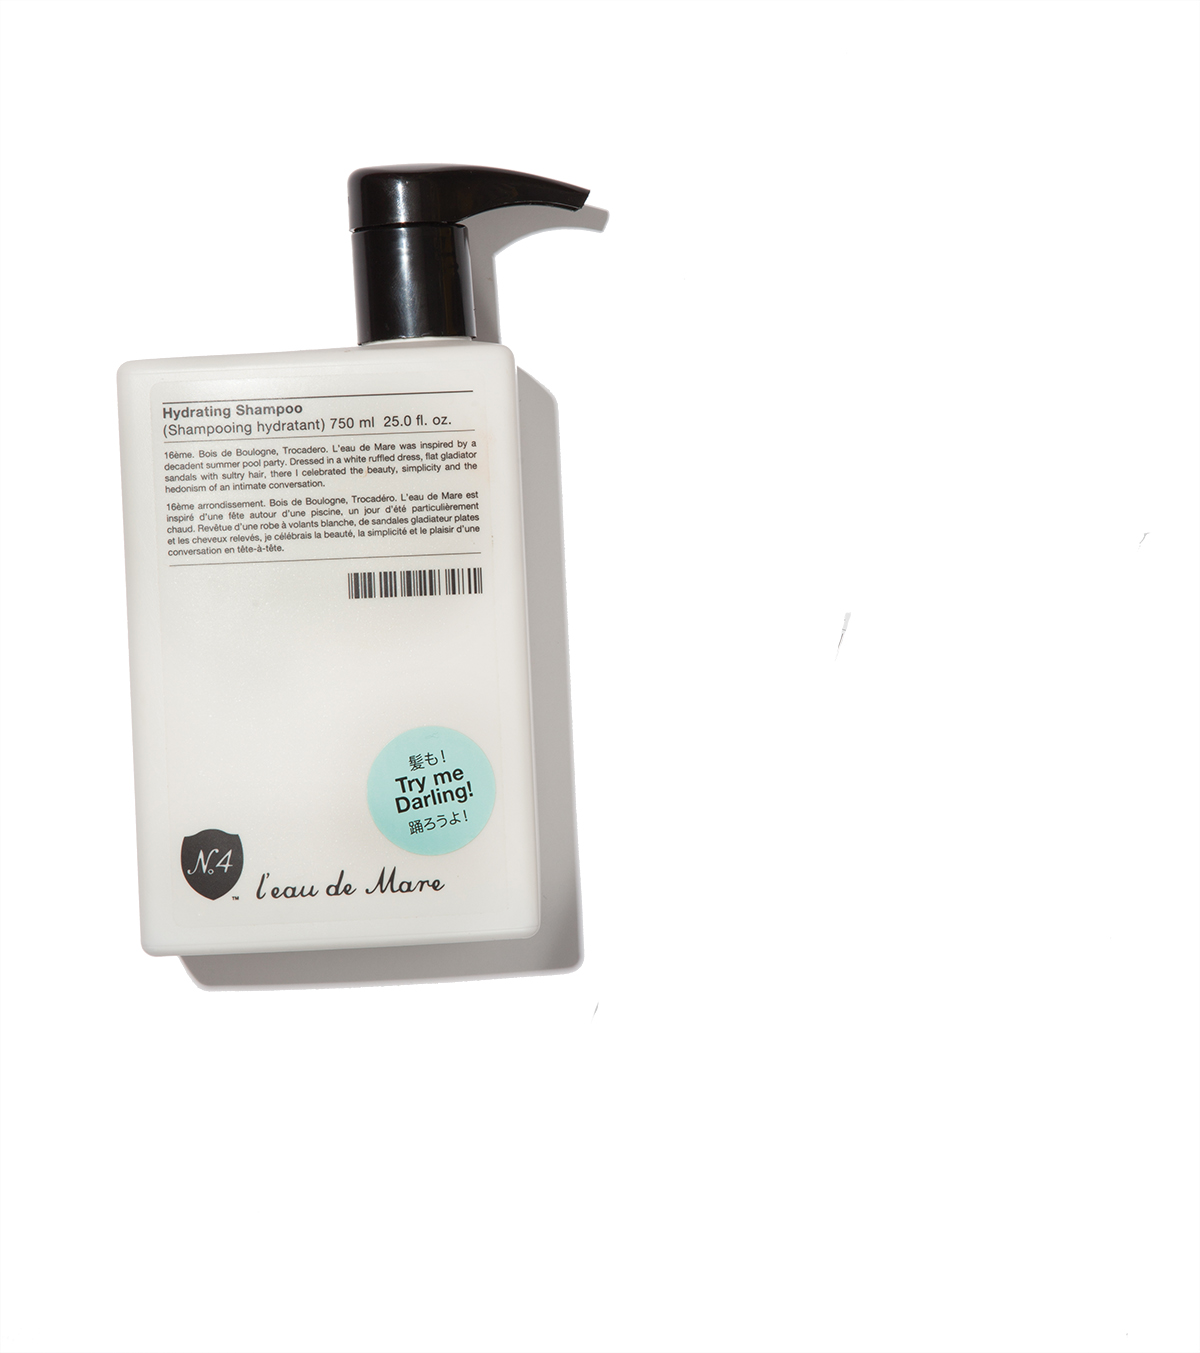 Hot Shop Natural Beauty Original Sprout Hair Ampamp Body Baby Wash 975 Ml 4 Mighty Hairspray Hydrating Shampoo N4 Is What We Call High Performance Care A Truly Well Rounded Performing Non Toxic Line That